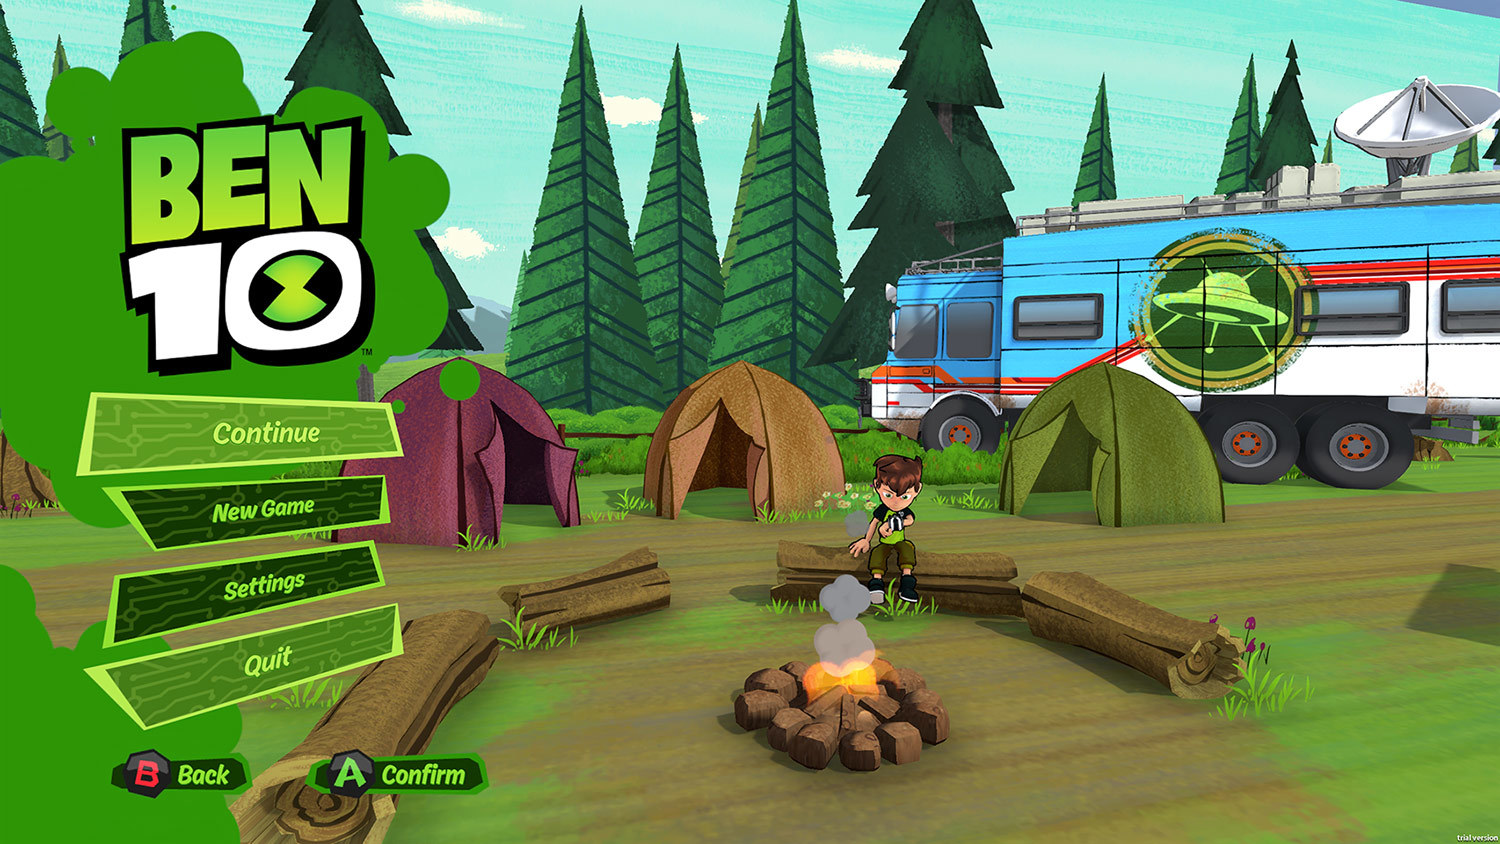 Ben 10 for Xbox One image